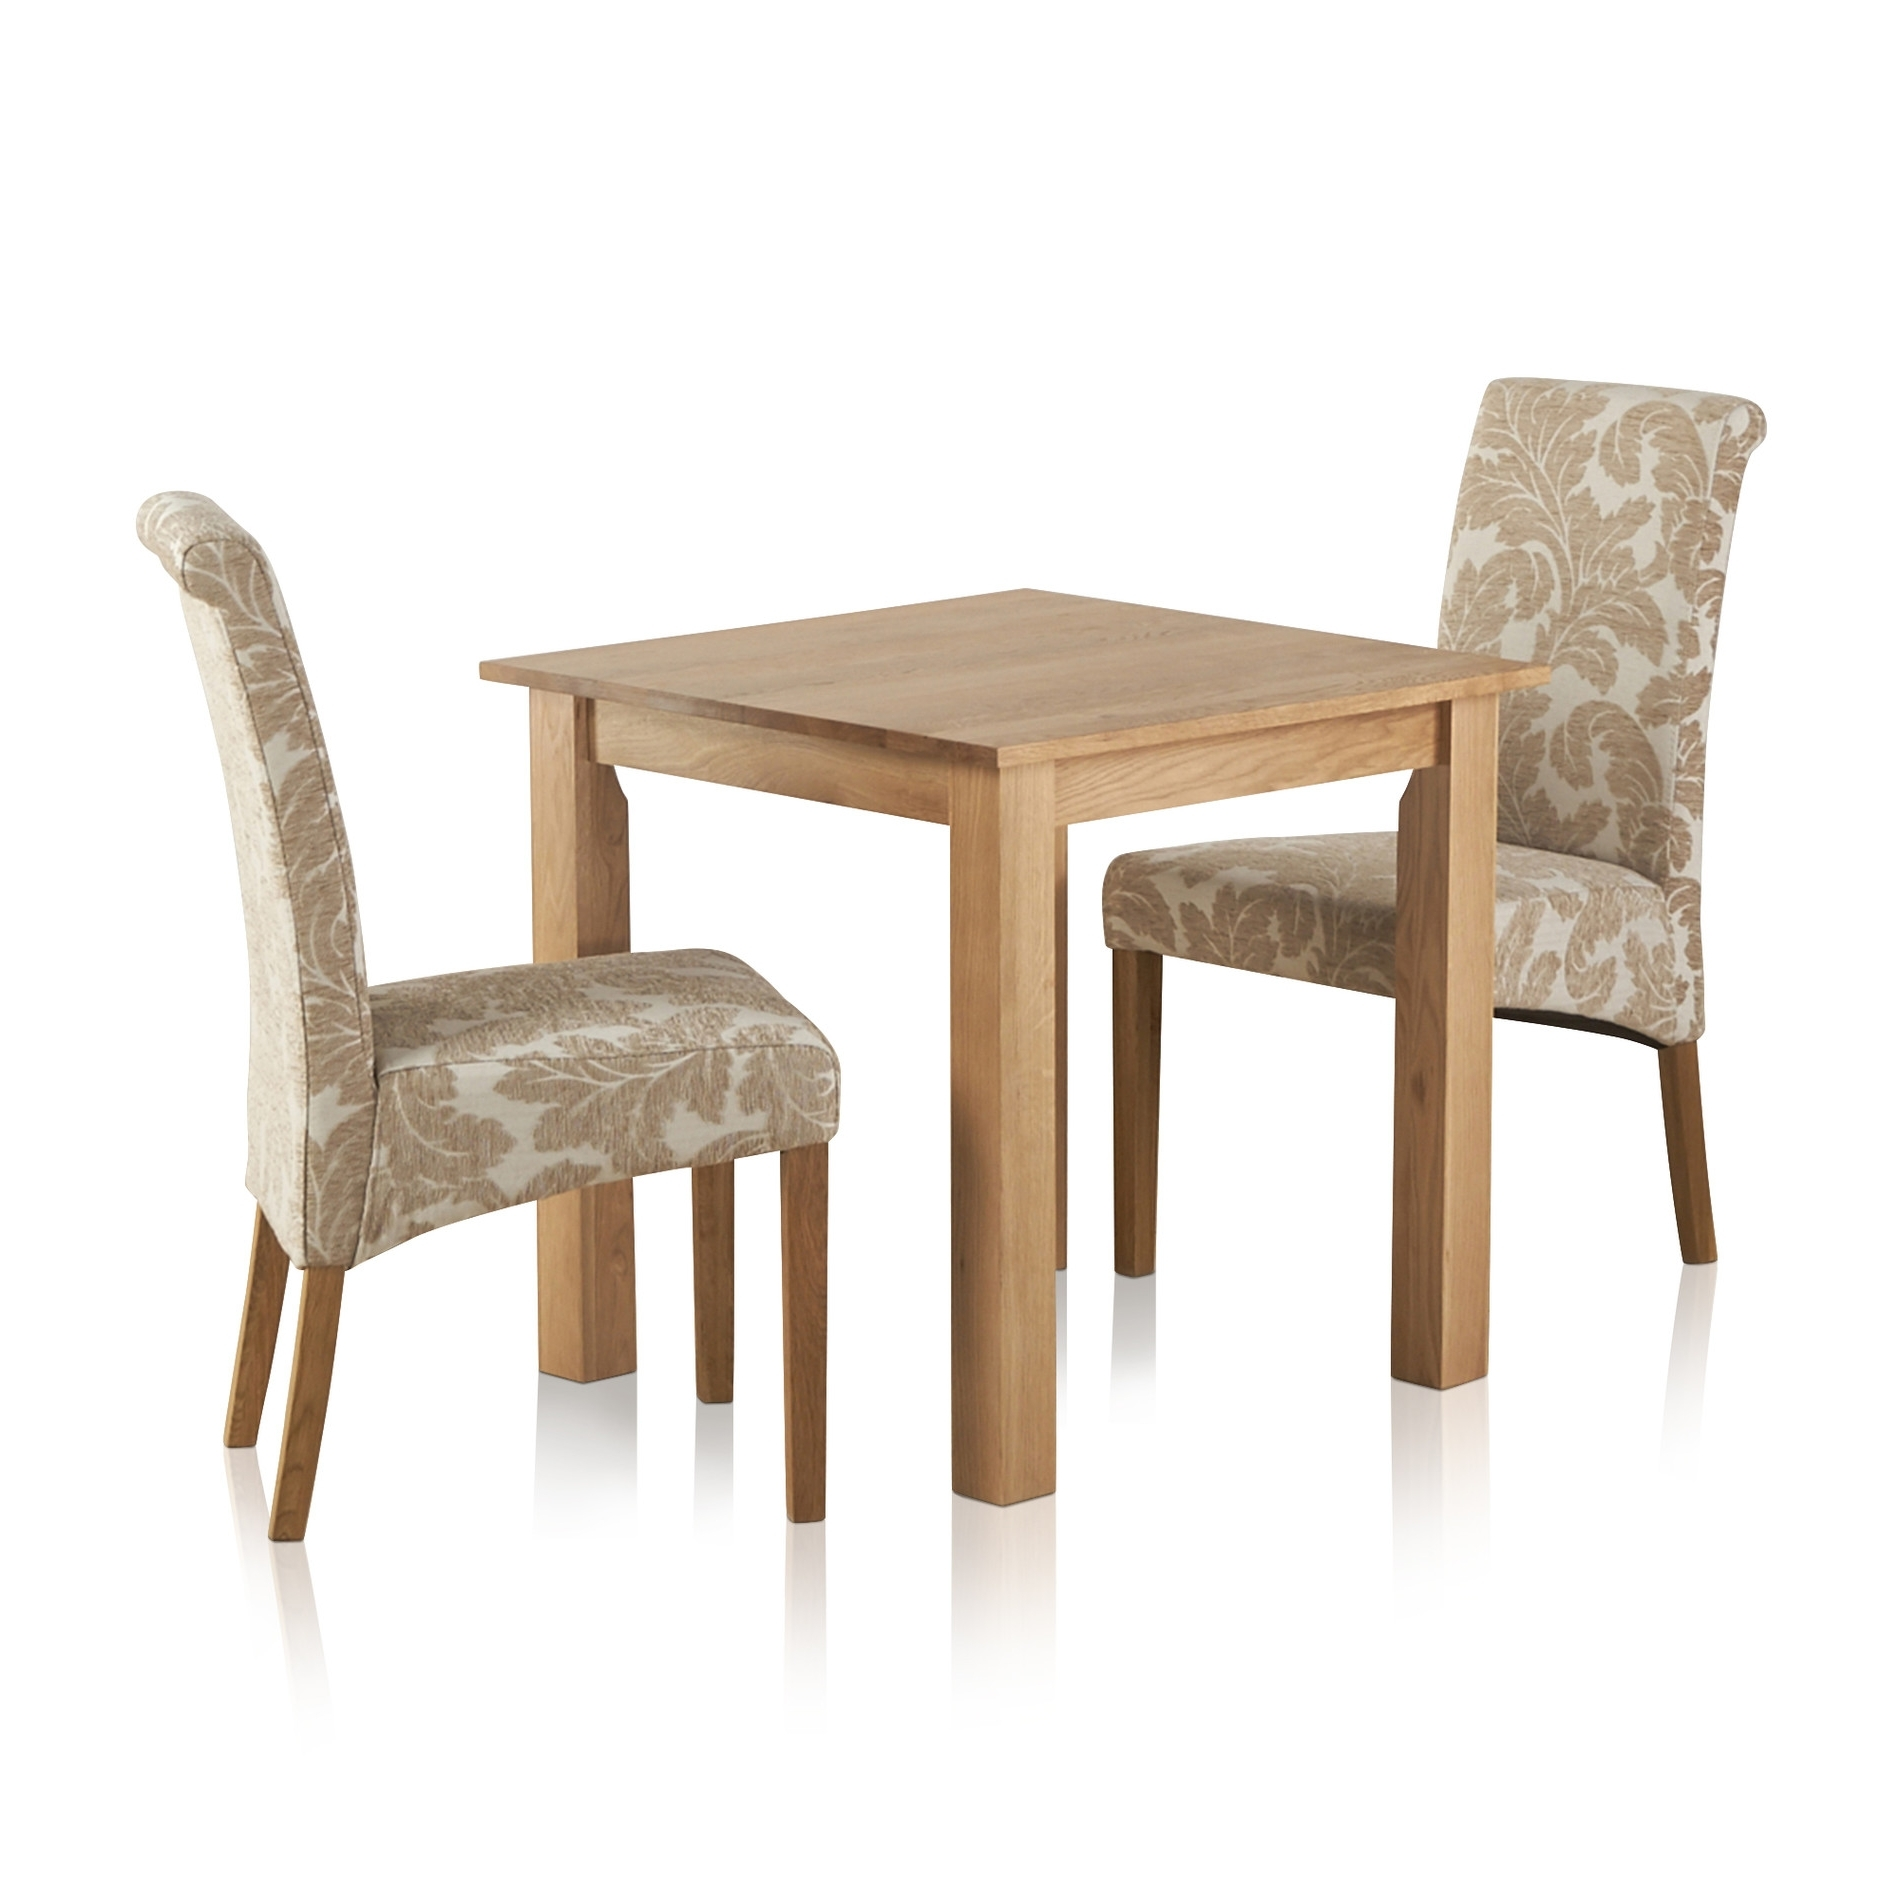 Popular Hudson Dining Set In Solid Oak: Table + 2 Patterned Beige Chairs Within Hudson Dining Tables And Chairs (View 20 of 25)